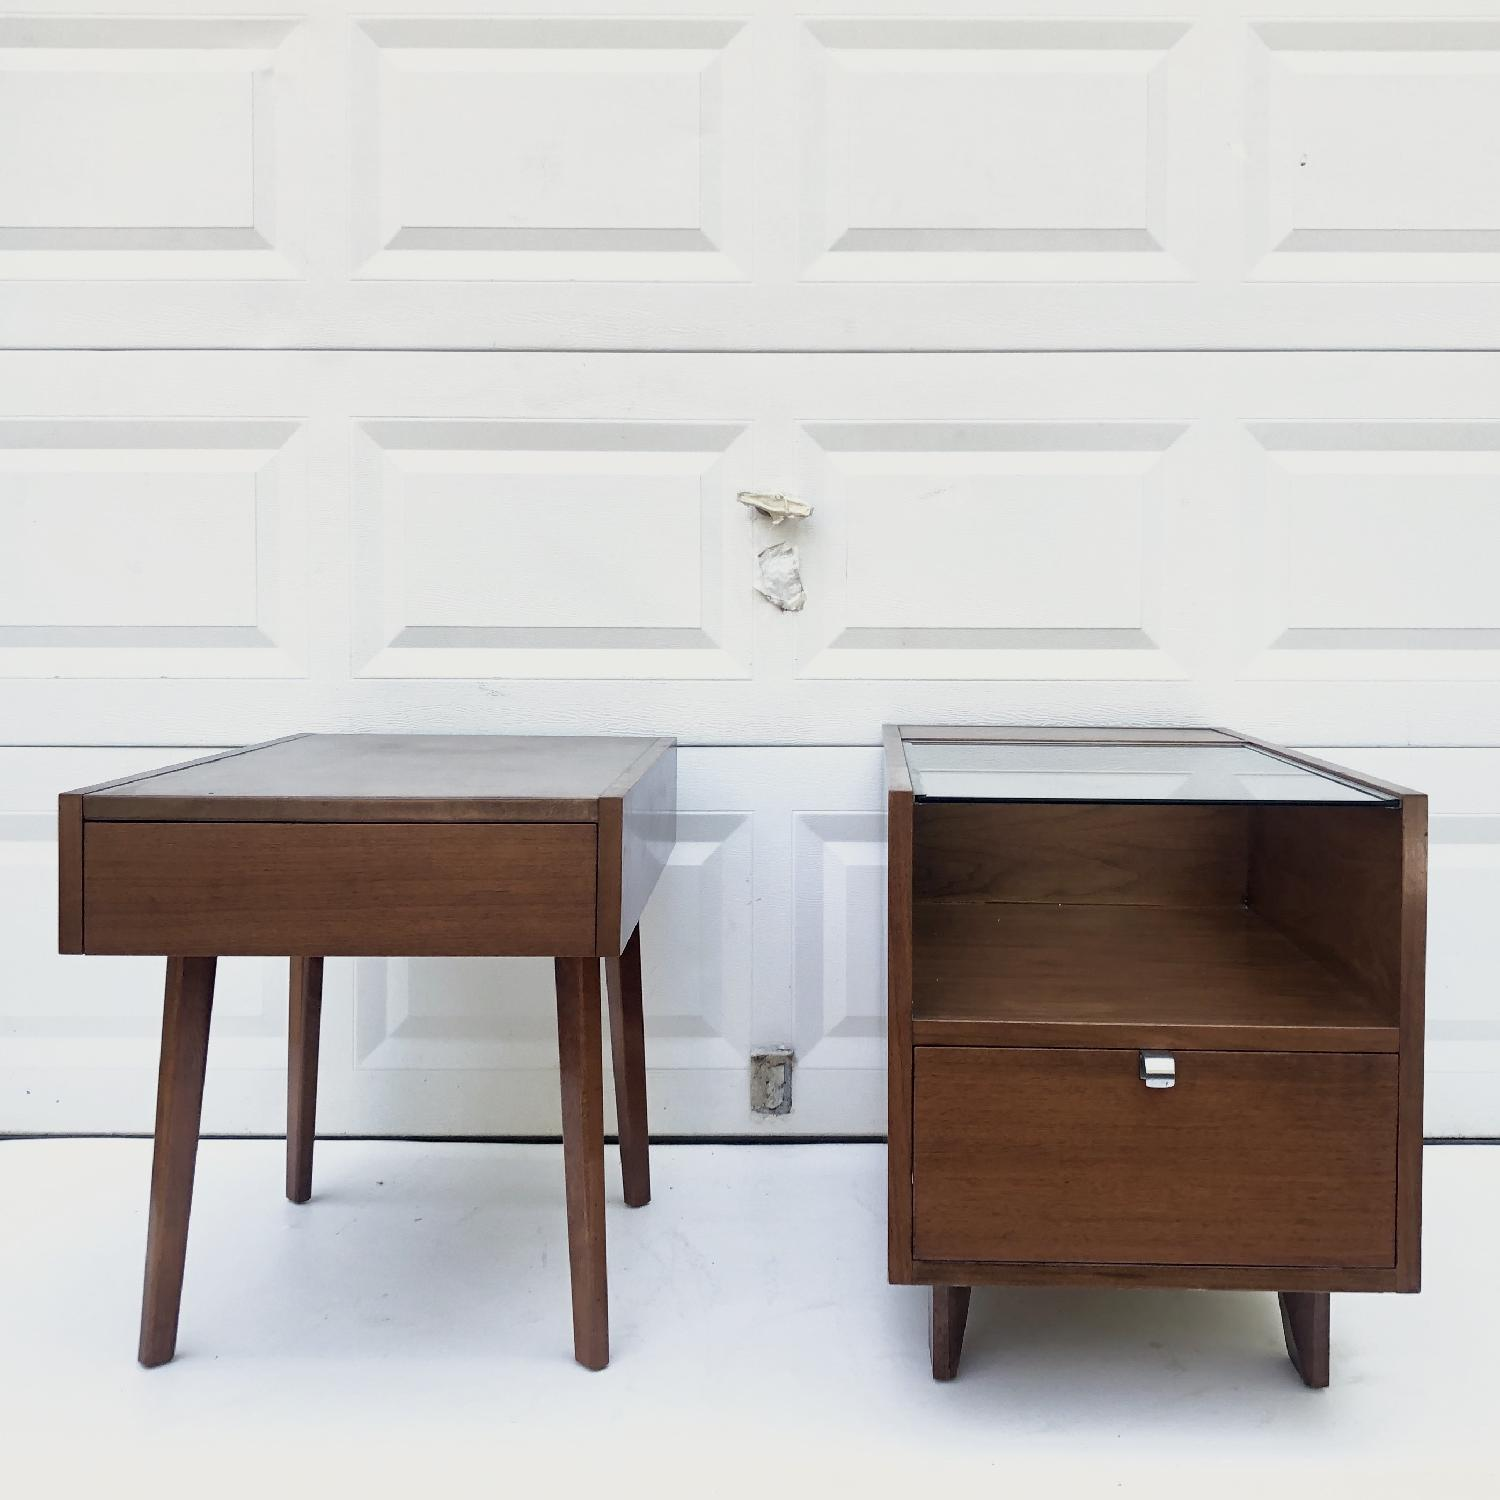 Herman Miller Side Tables by George Nelson - image-7